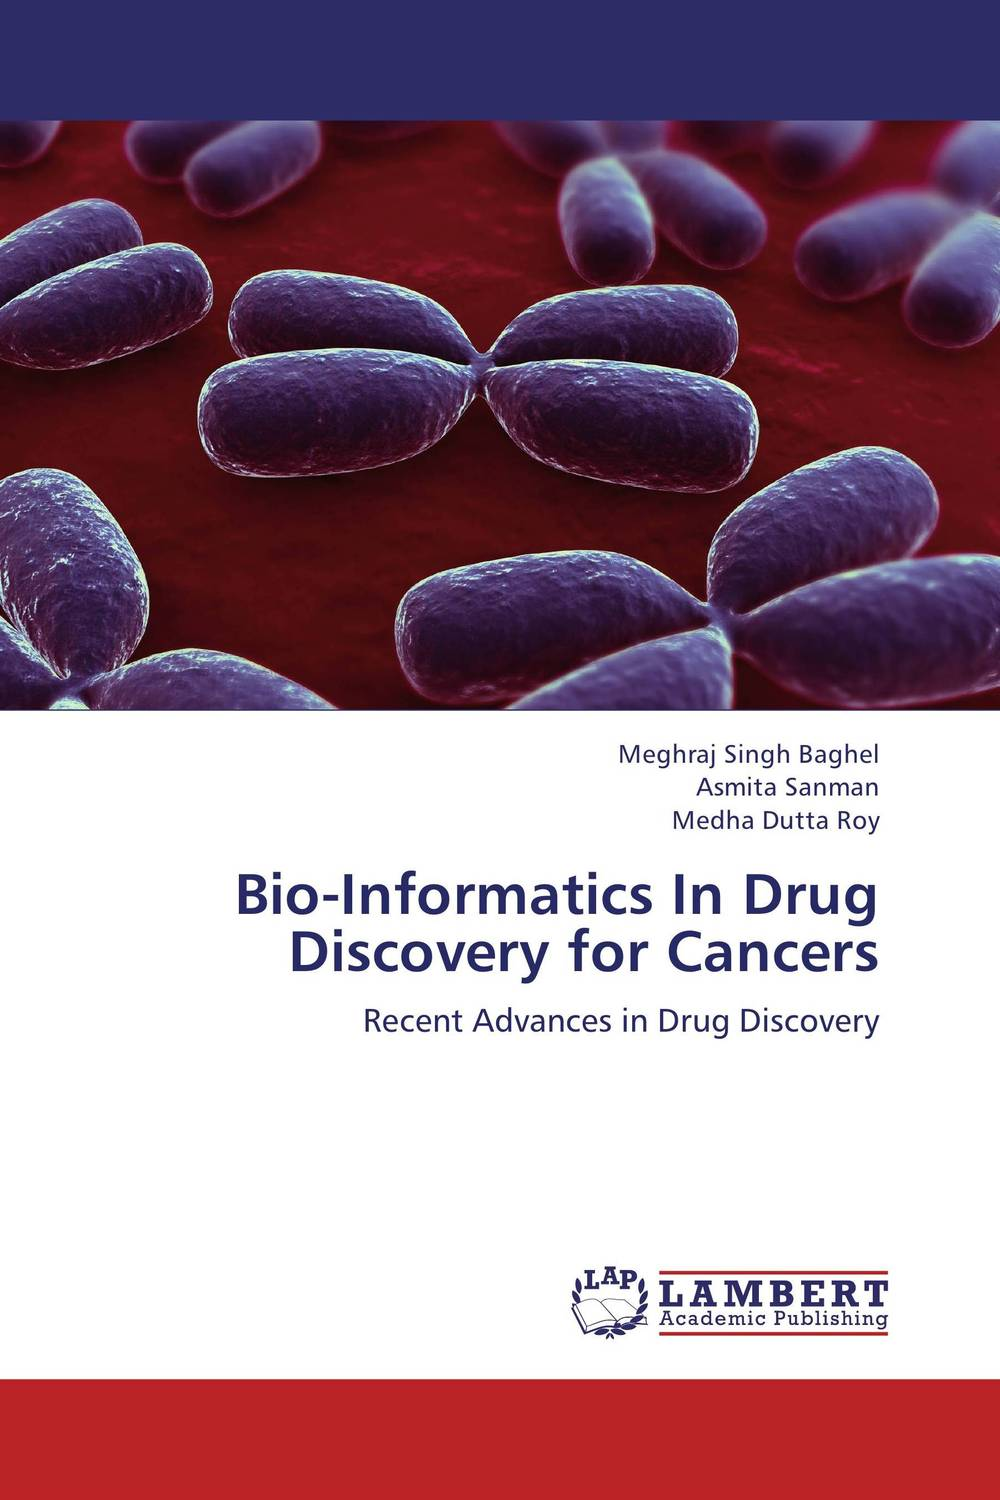 Bio-Informatics In Drug Discovery for Cancers seeing things as they are